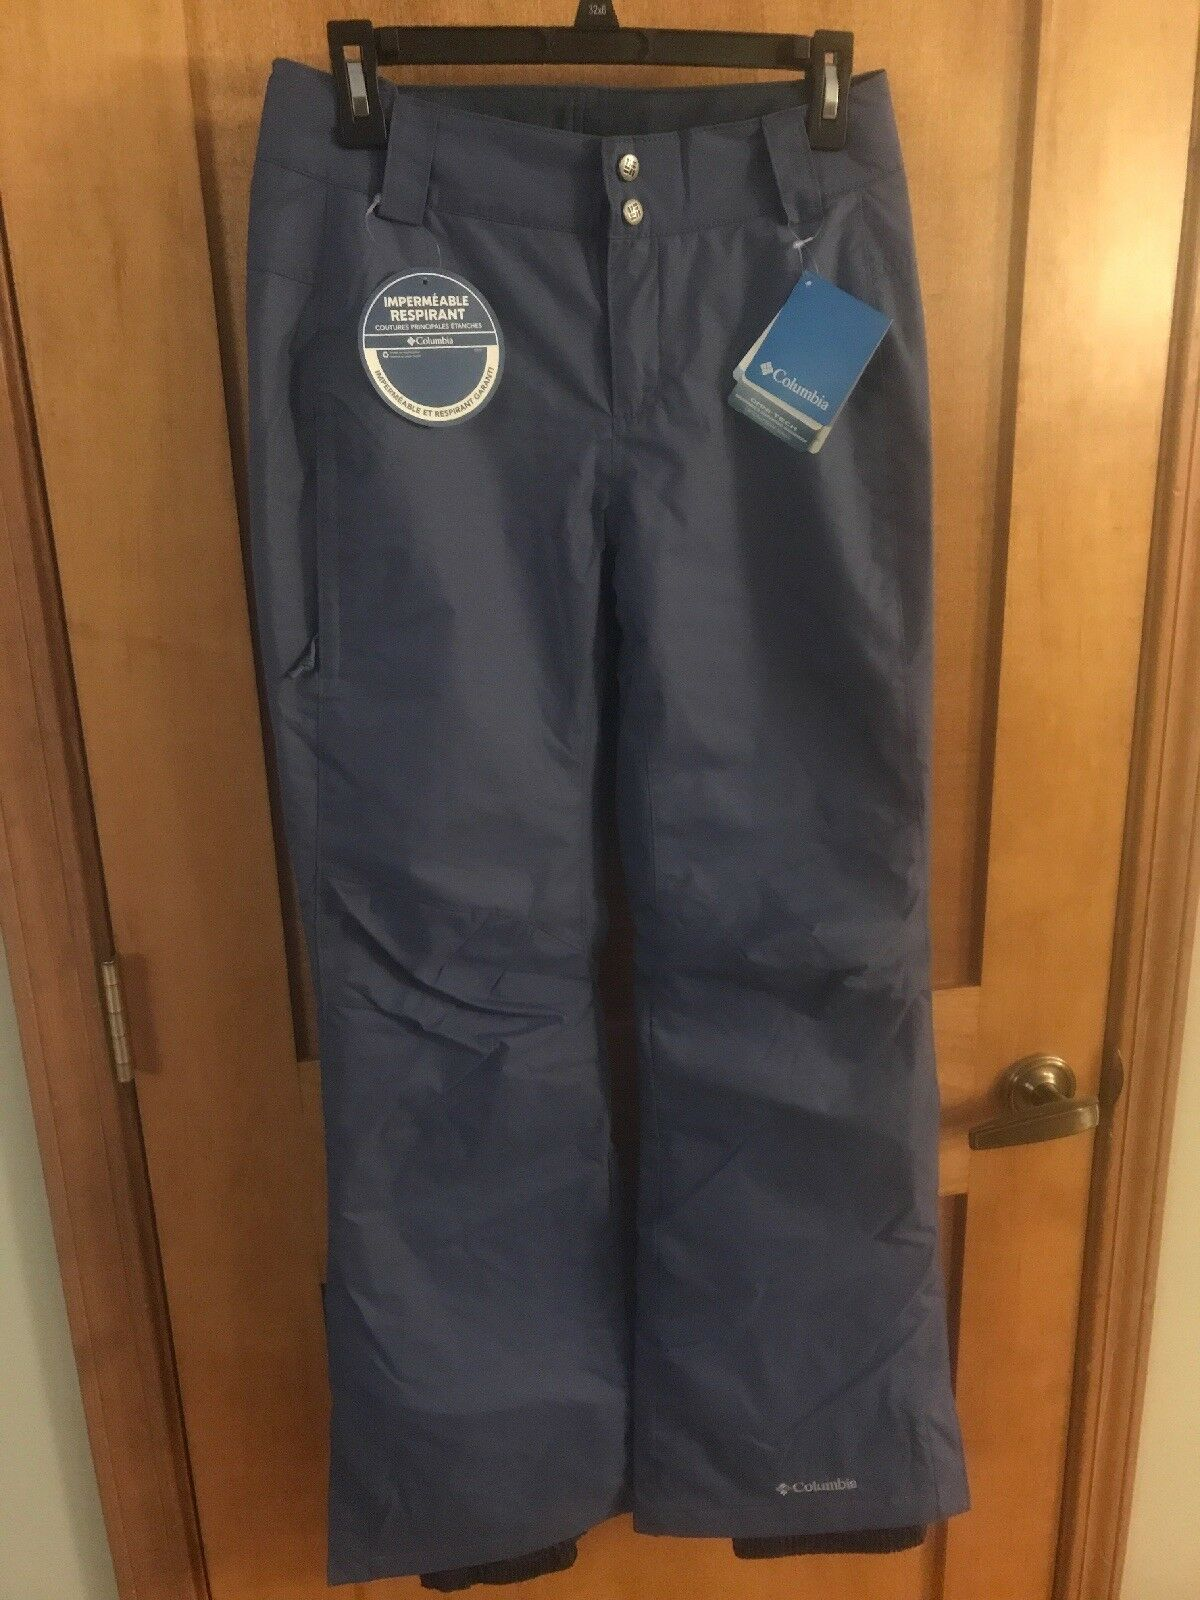 NWT Columbia Arctic Trip PANT Pants Ski Snowboard Women -  bluee - X Small -  95  100% authentic